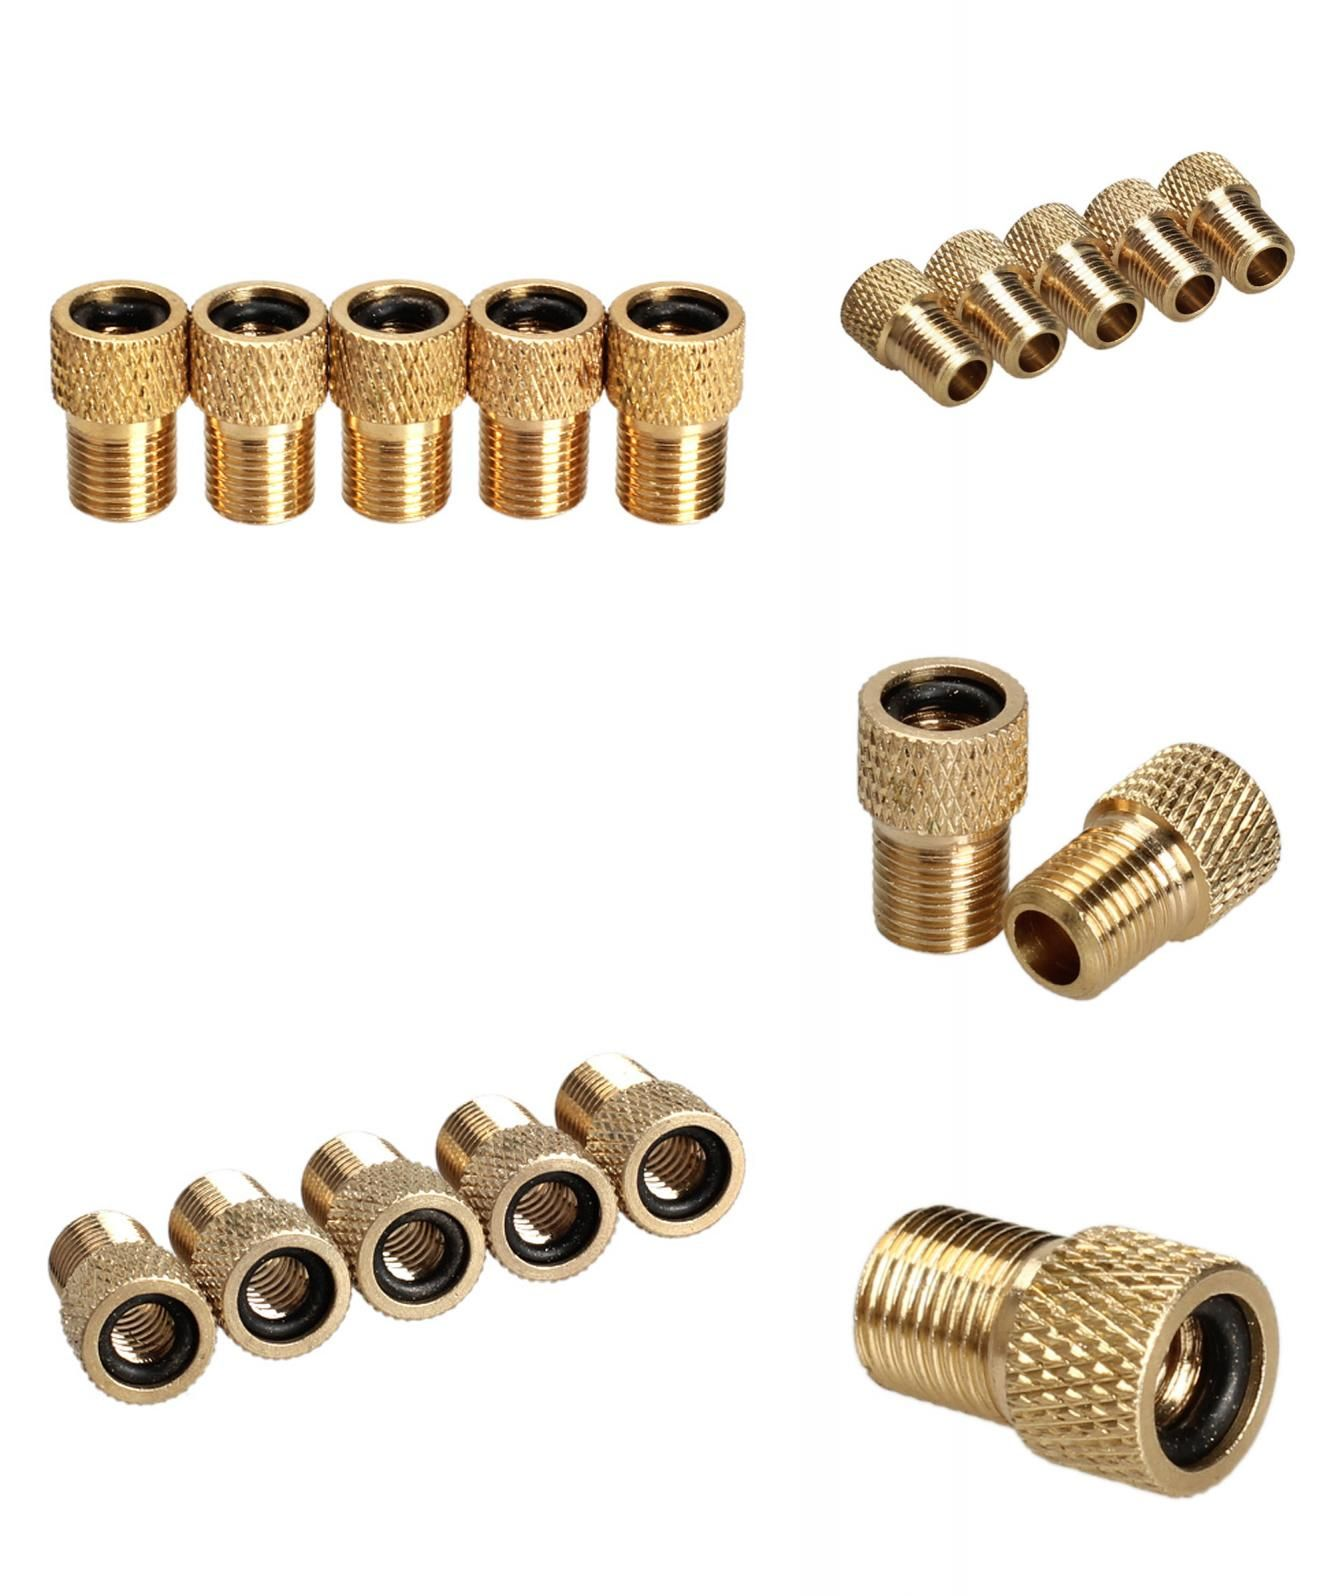 5x Bicycle Bike Tire Valve Adapter Presta Schrader Tube Pump Tool Converter Tube